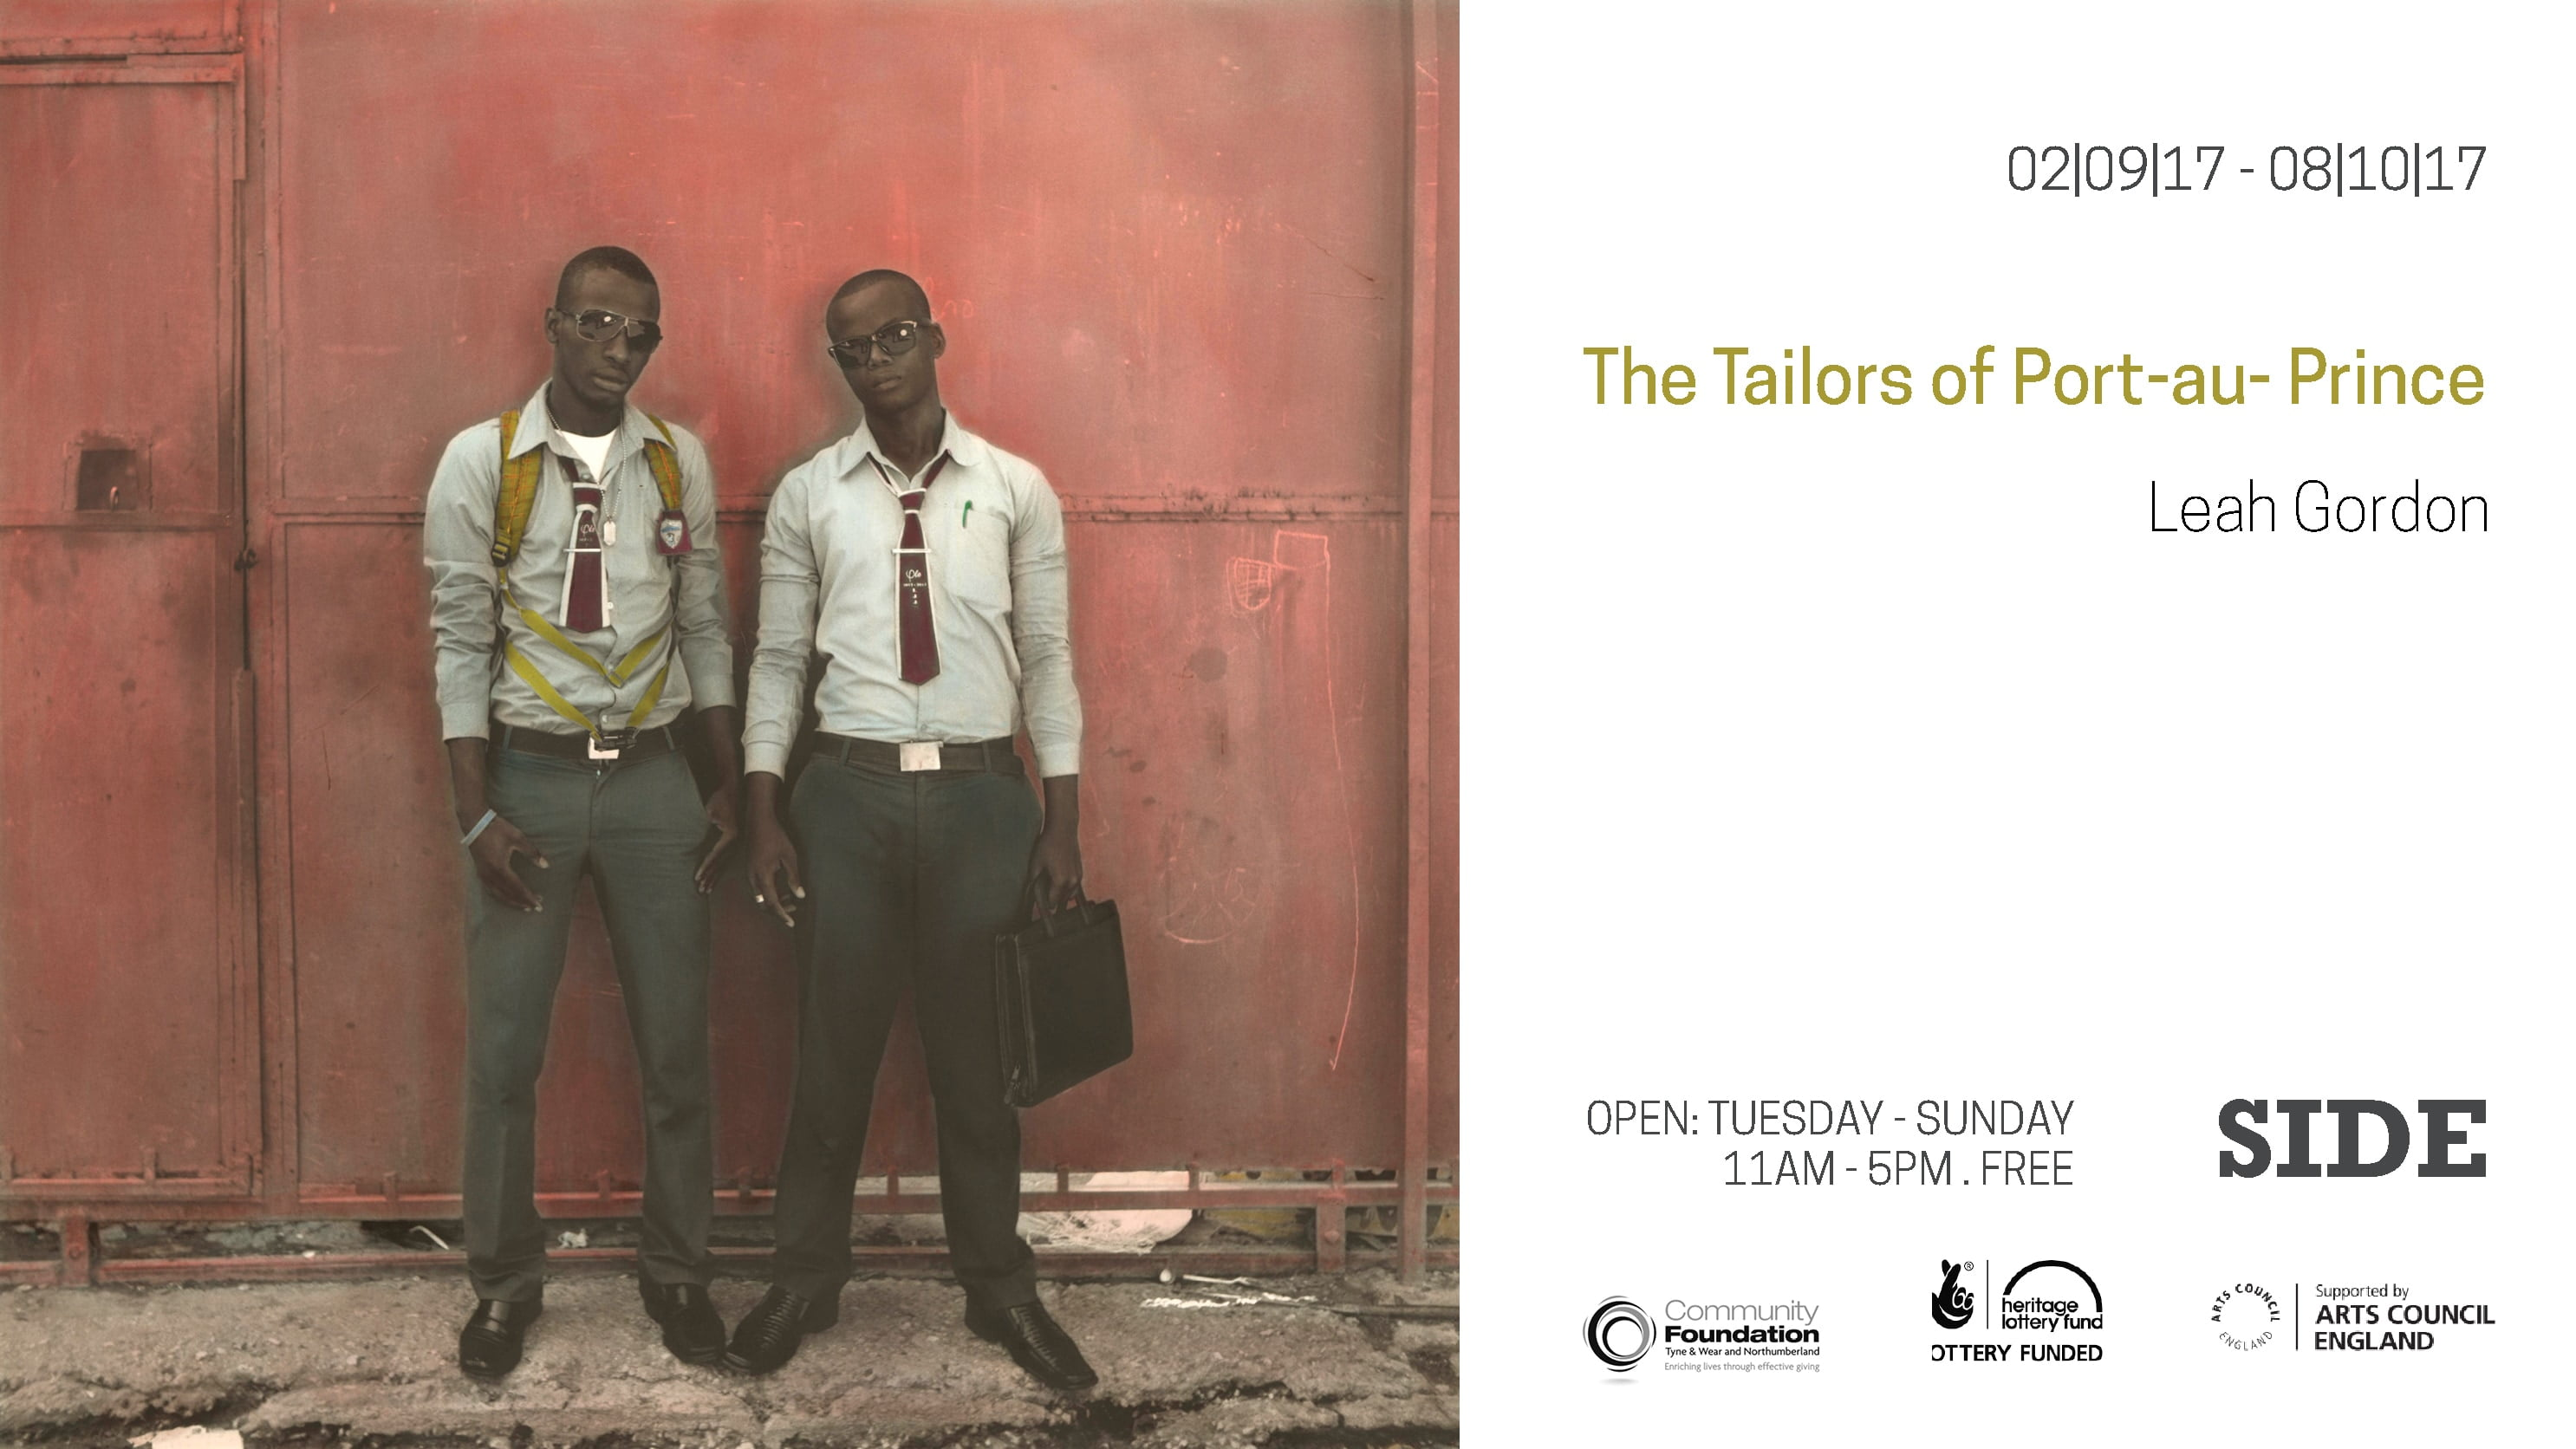 The Tailors of Port-au-Prince